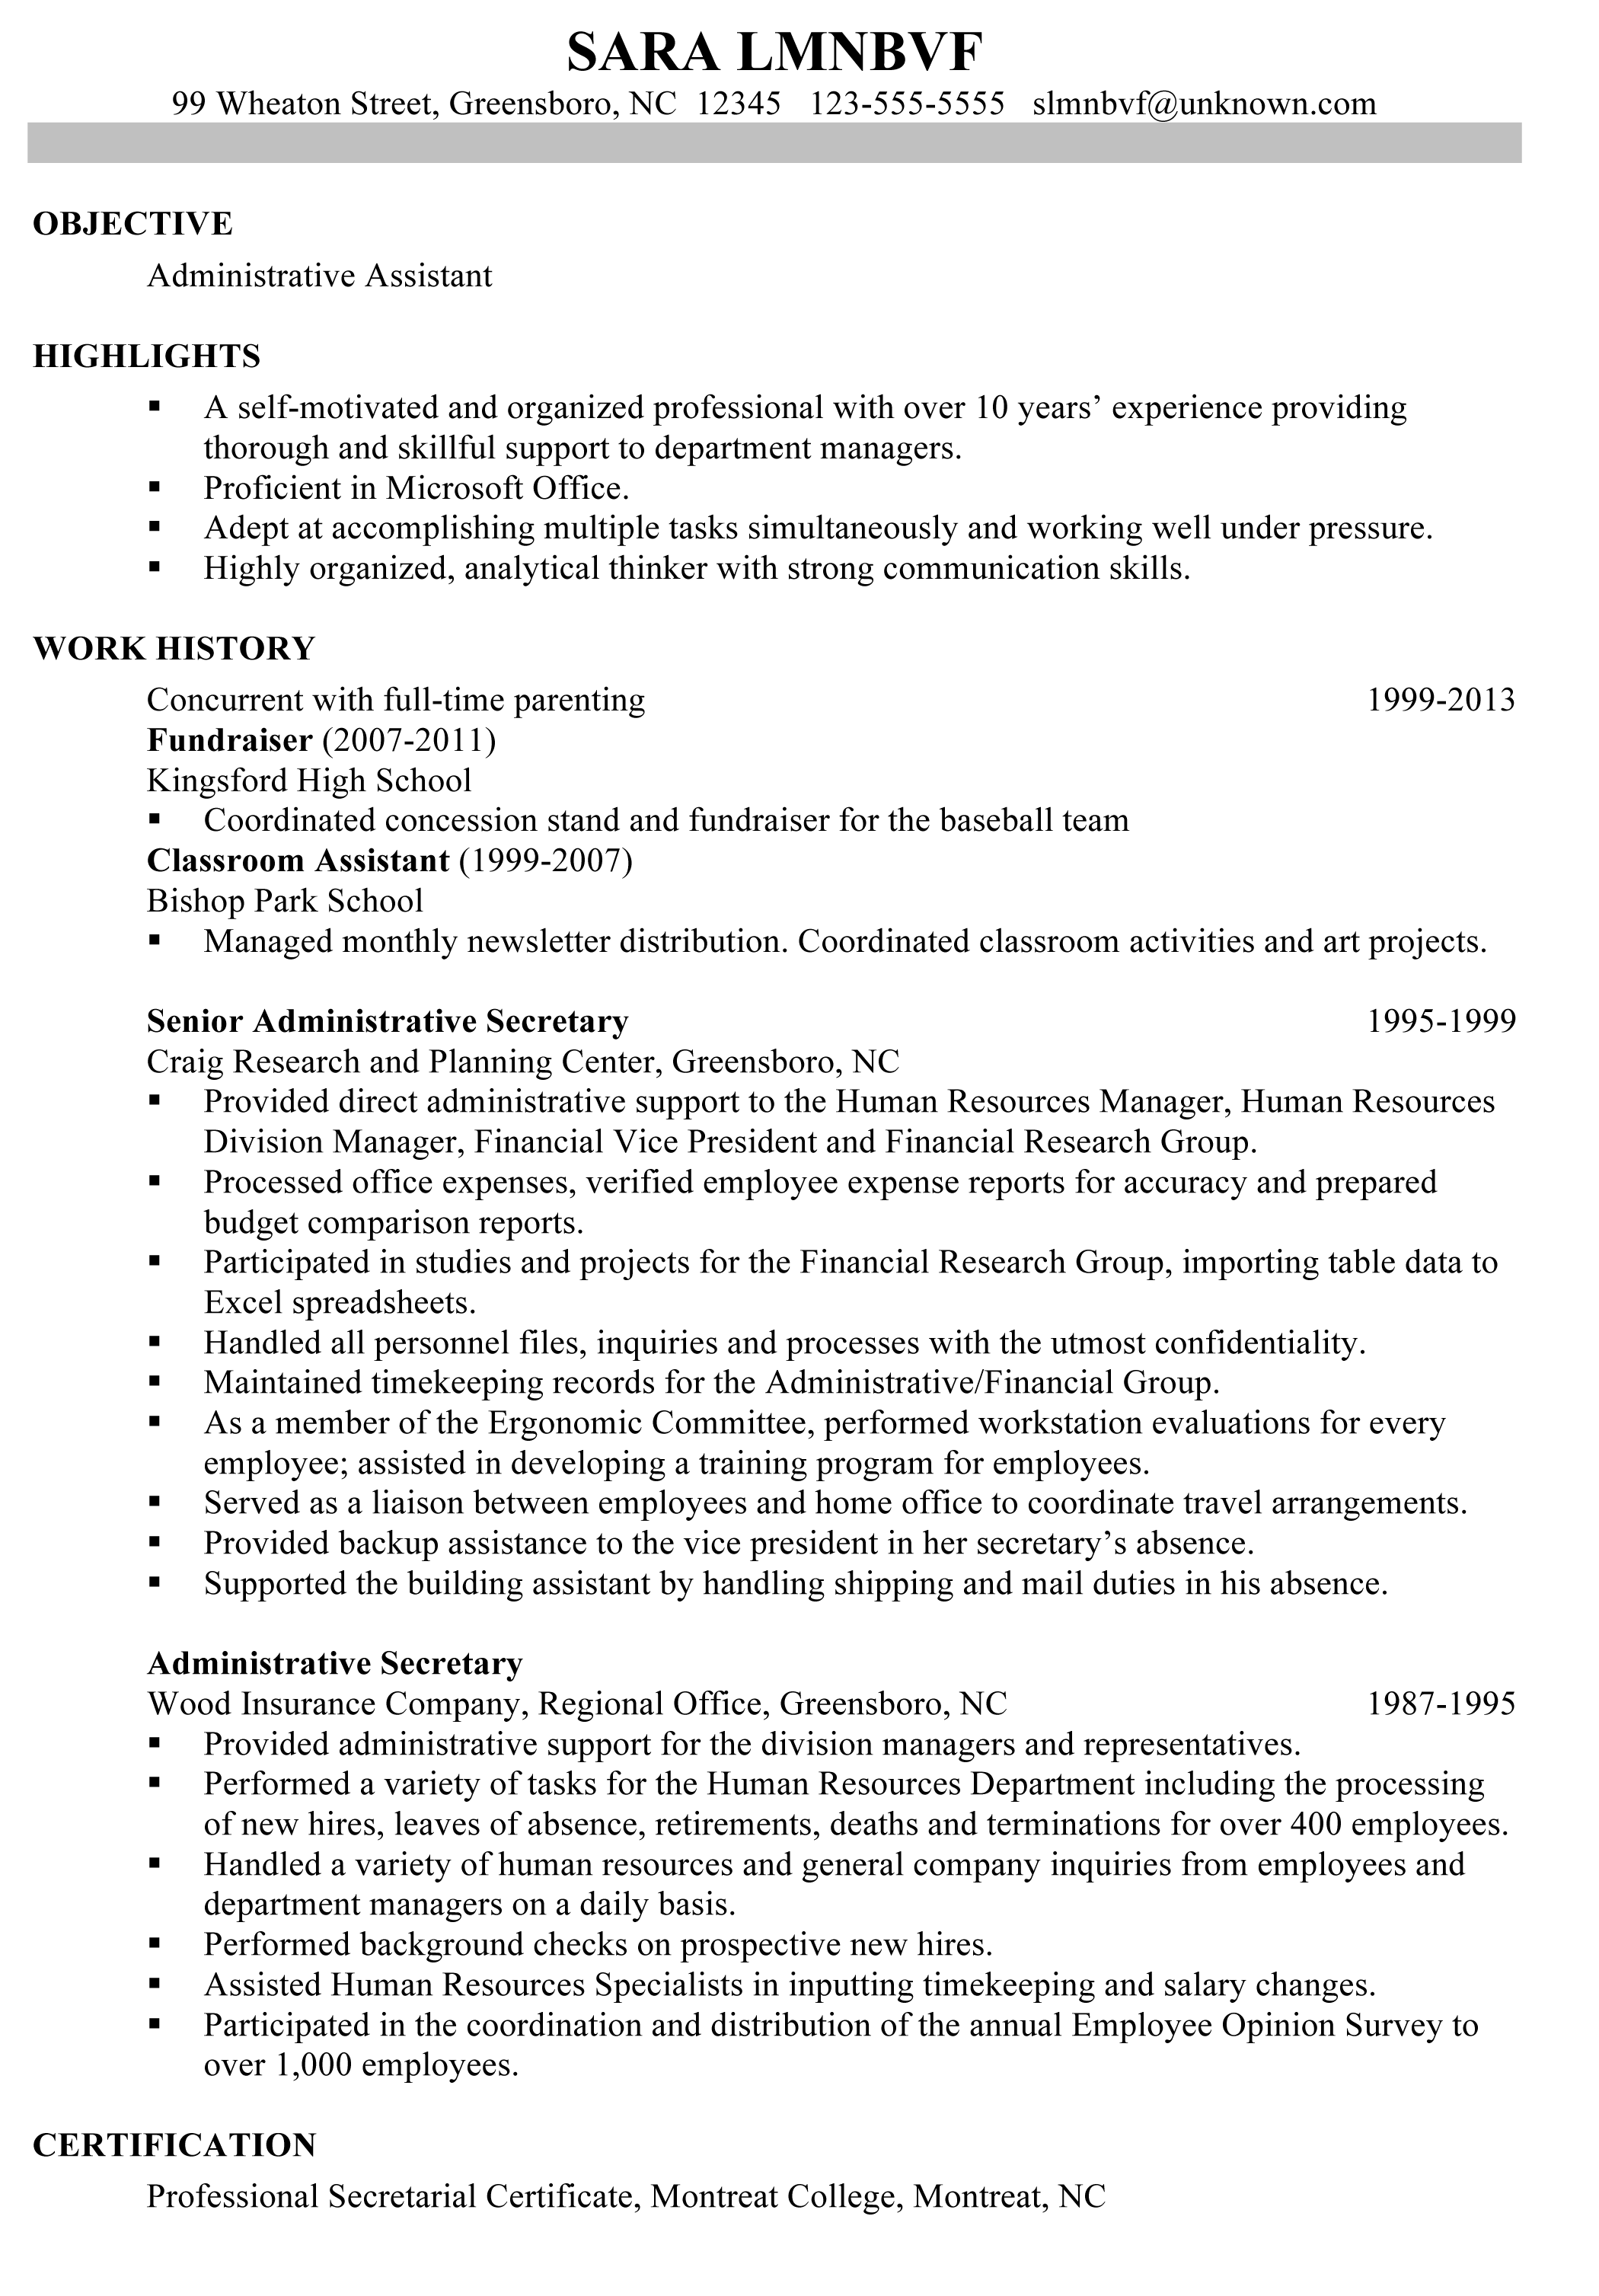 resume Resume Administrative Assistant Objective great administrative assistant resumes using professional resume templates from my ready made builder